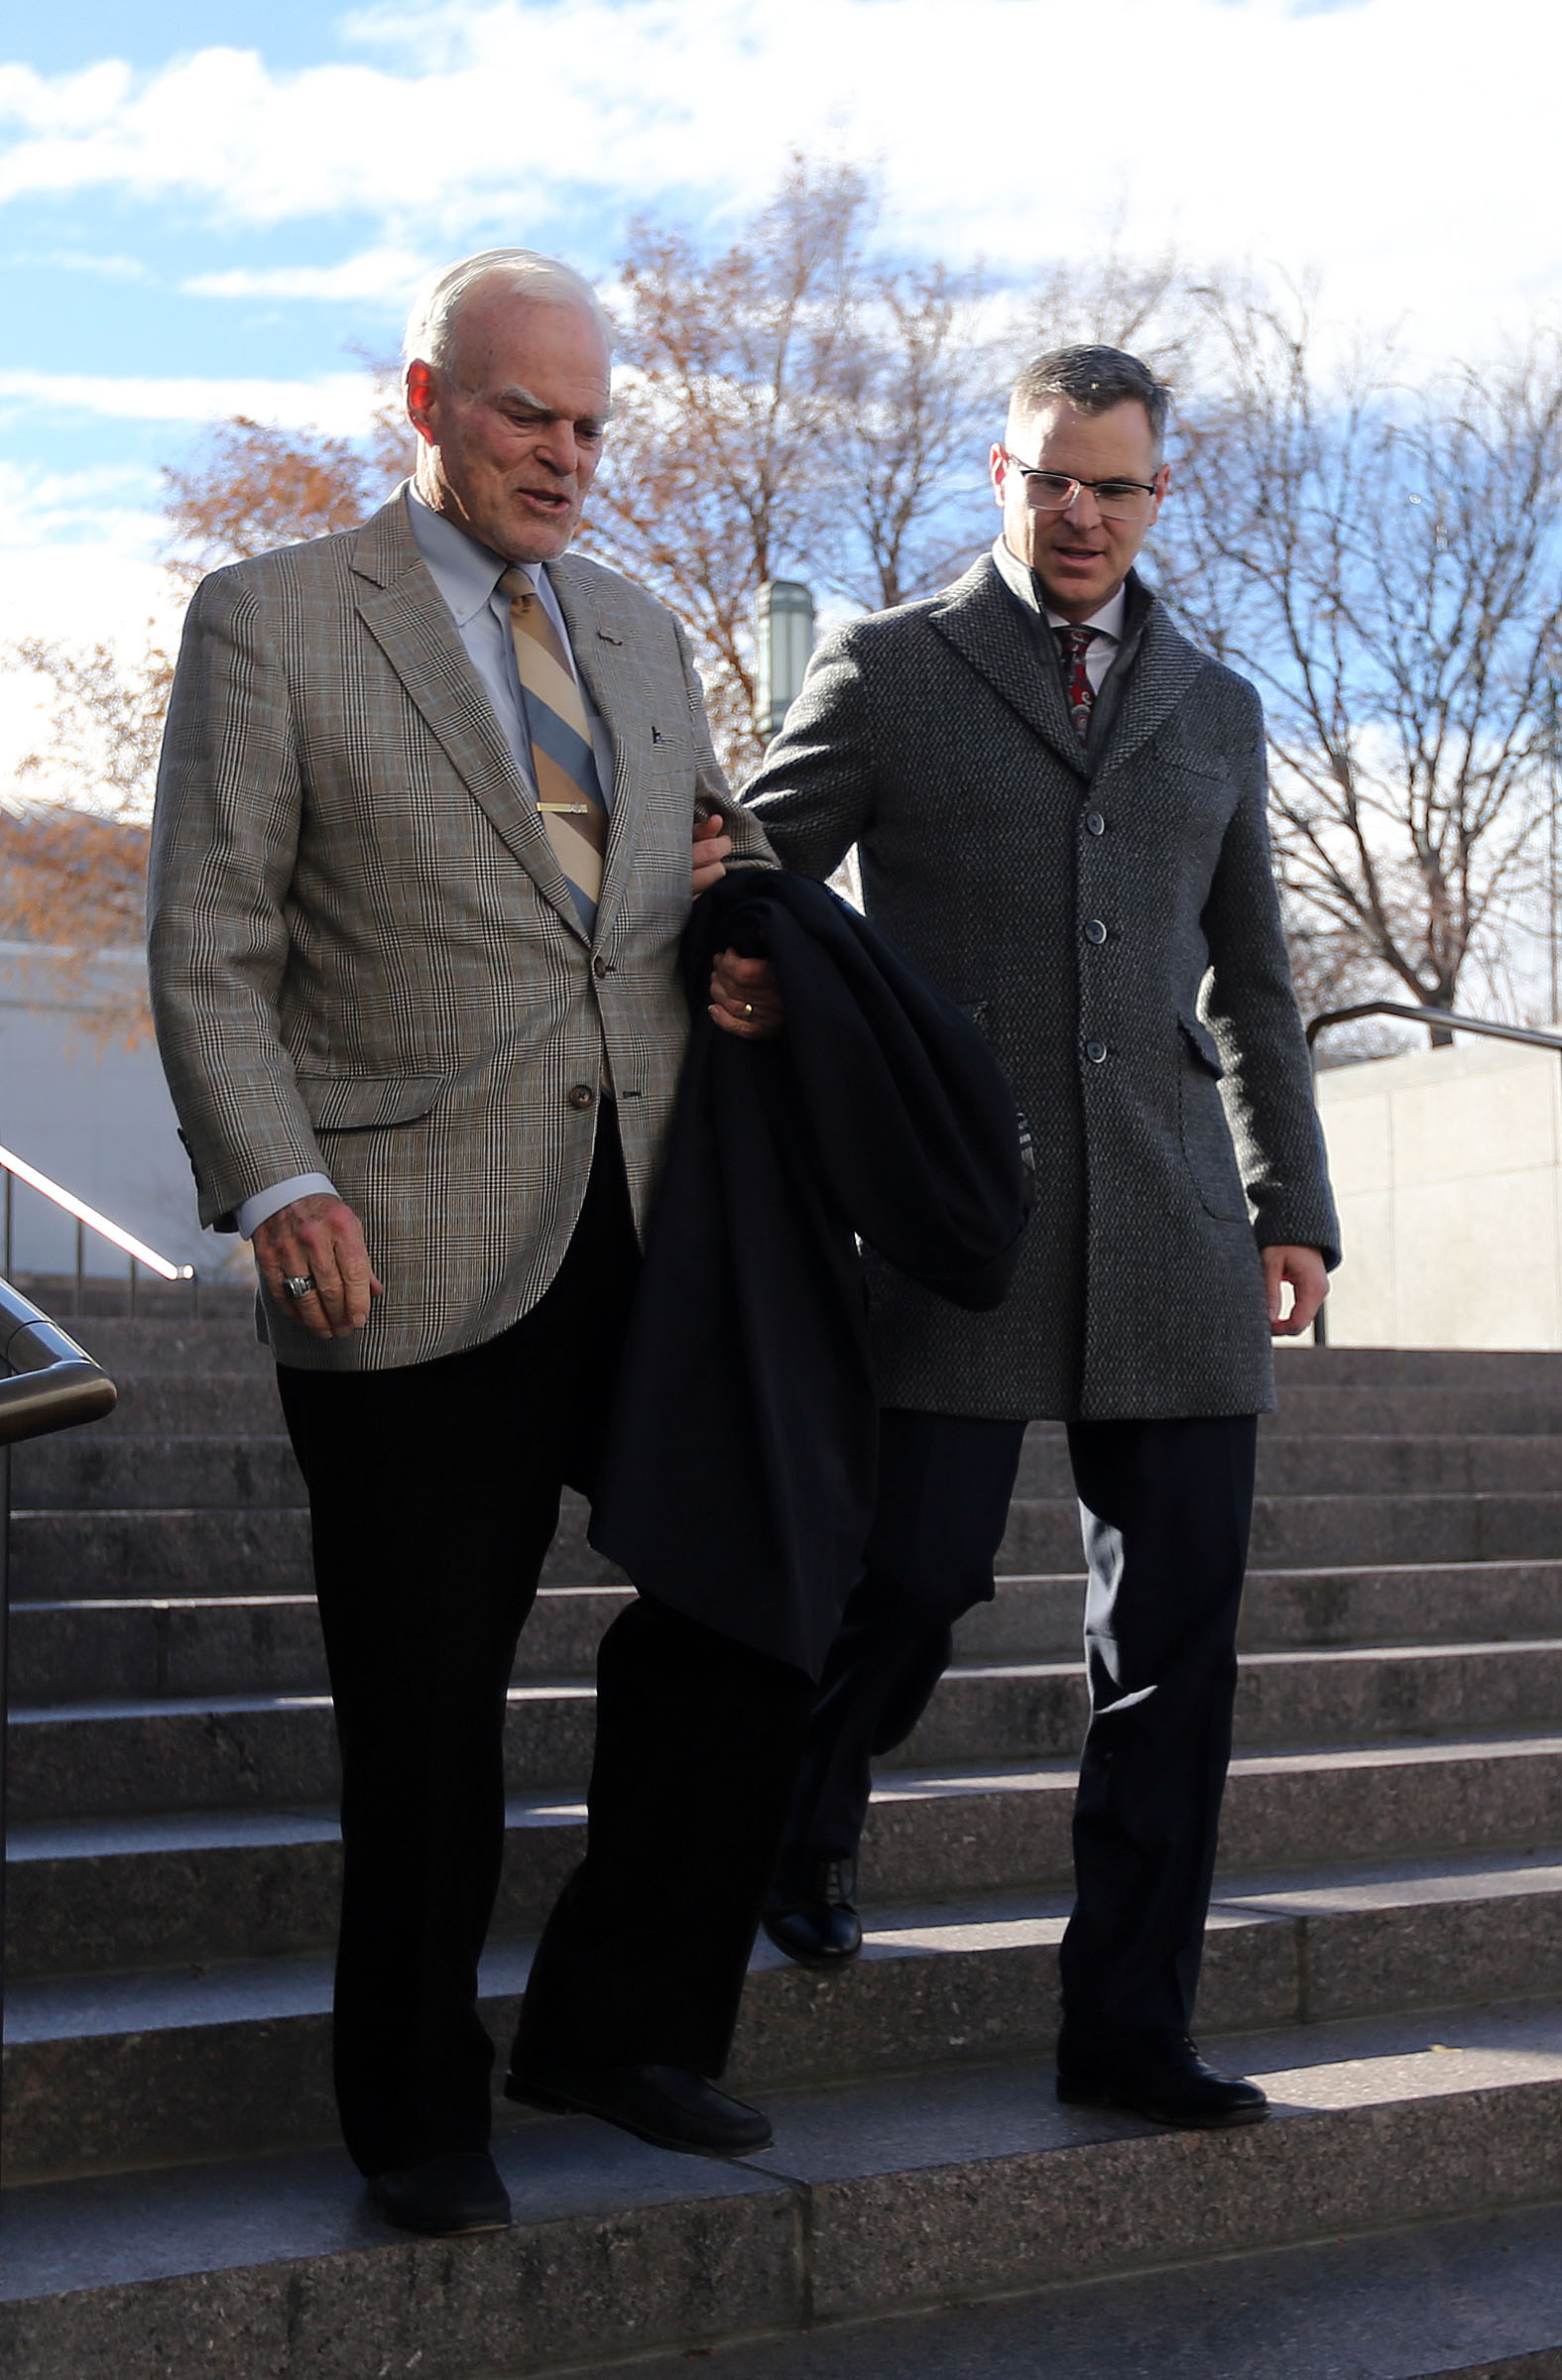 Spencer S. Eccles and Spencer P. Eccles arrive for President Thomas S. Monson's funeral at the Conference Center in Salt Lake City on Friday, Jan. 12, 2018.